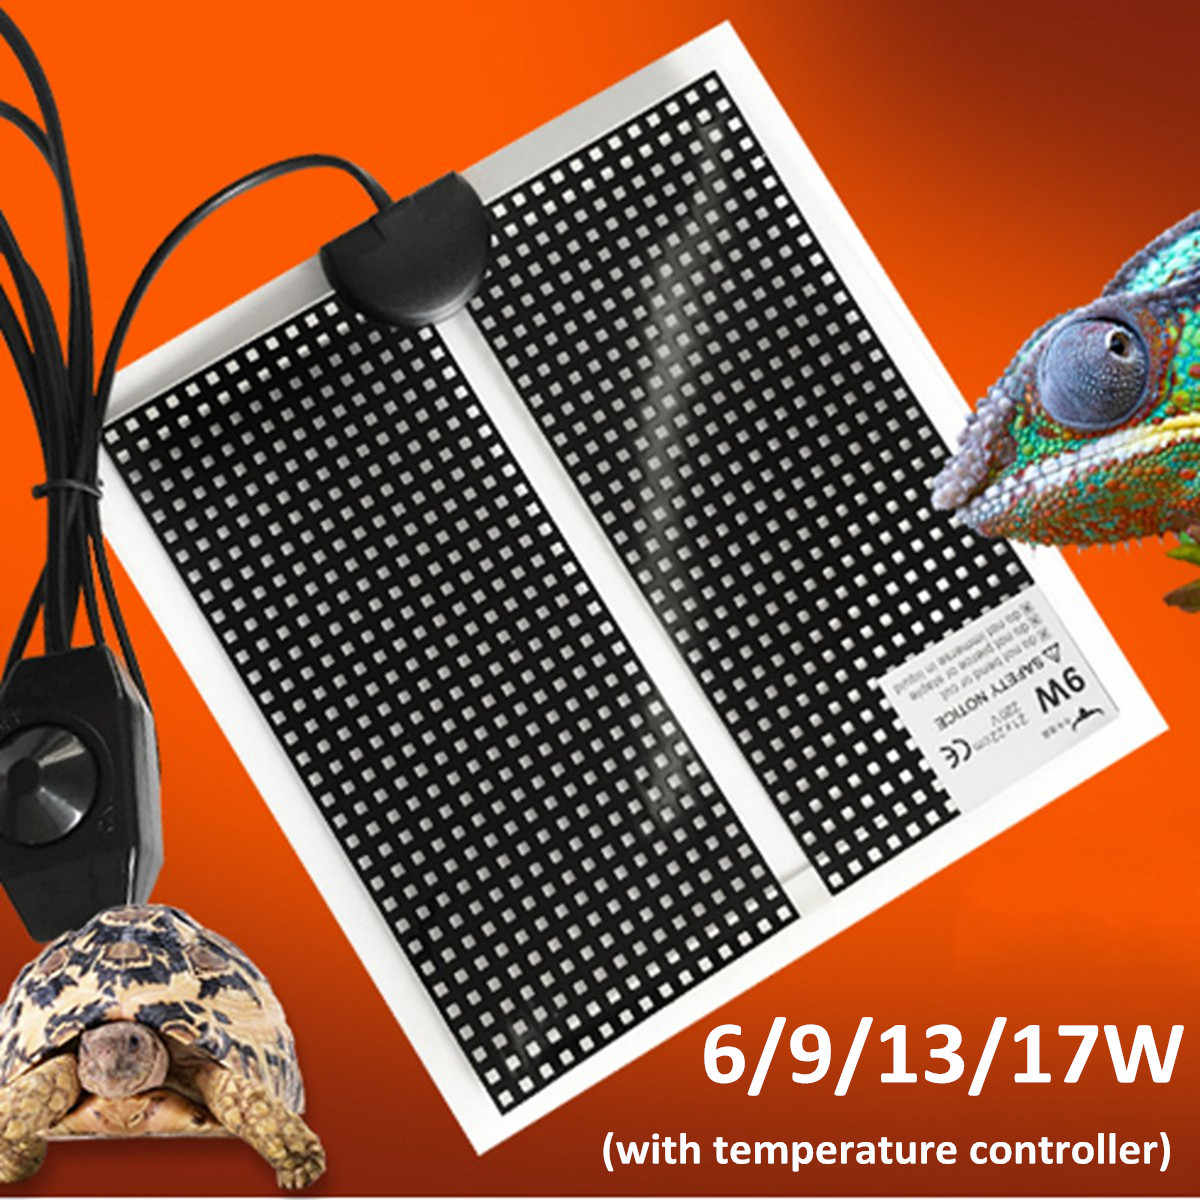 Terrarium Reptiles Heat Mat 6-17W Climbing Pet Heating Warm Pad Adjustable Temperature Controller Incubator Mat Tools Black